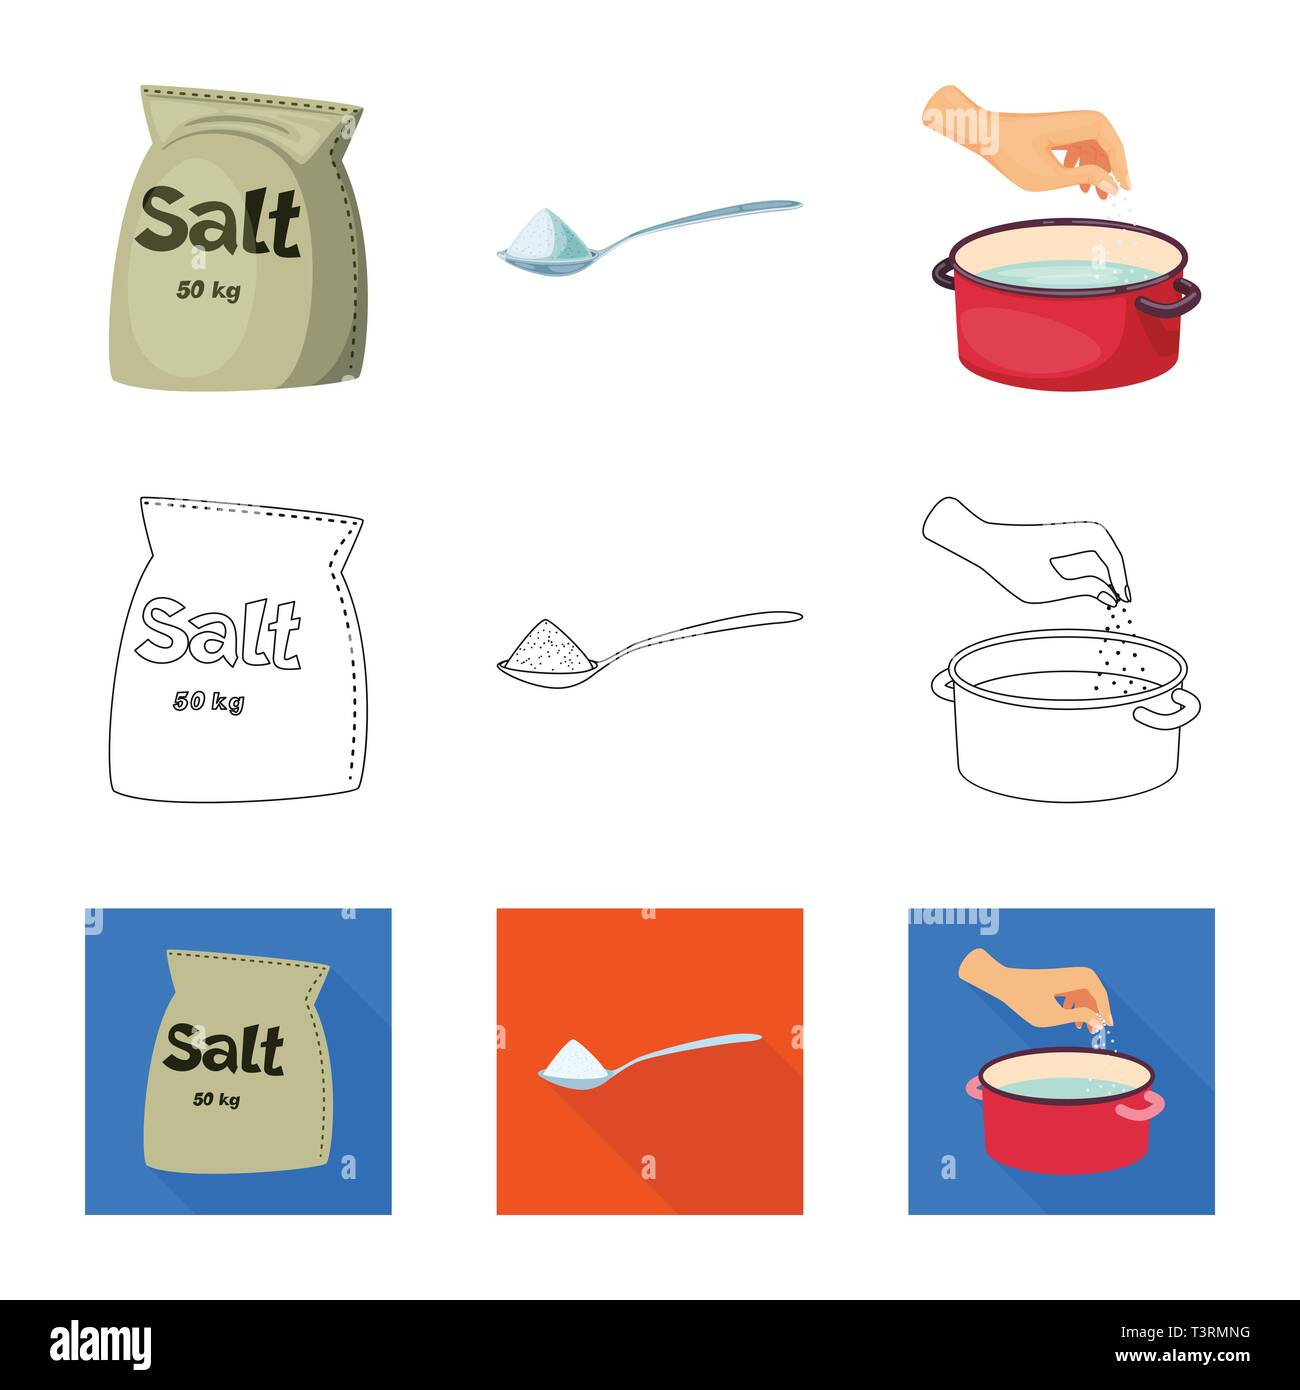 Bag Spoon Casserole Seasoning Salty Water Handful Powder Hill Arm White Grains Sprinkle Flour Container Restaurant Cooking Sea Natural Baking Salt Food Sodium Mineral Raw Kitchen Set Vector Icon Illustration Isolated Collection Design Element Graphic